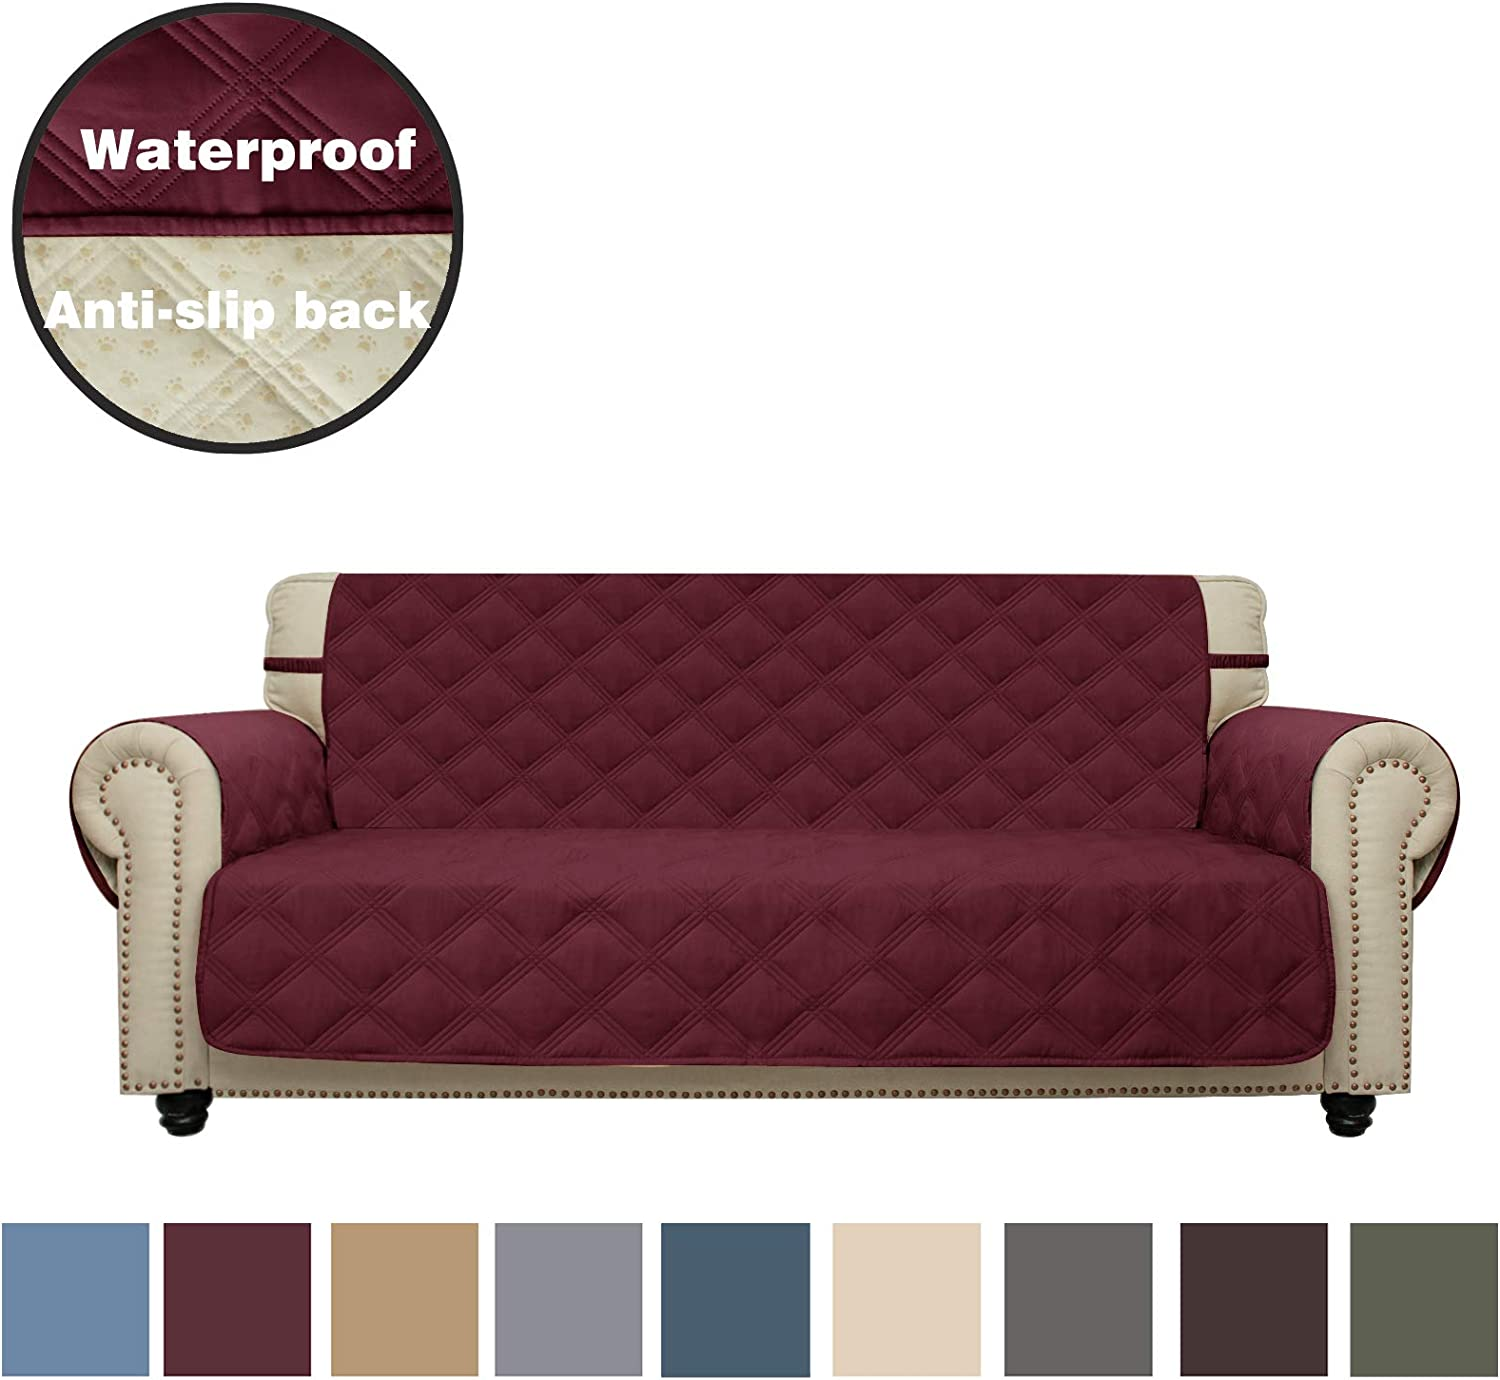 CHHKON Sofa Cover Waterproof with Anti-Skip Dog Paw Print 100% Quilted Furniture Protector Sofa Slipcover for Children, Pets for Leather Couch (Burgundy, Sofa)